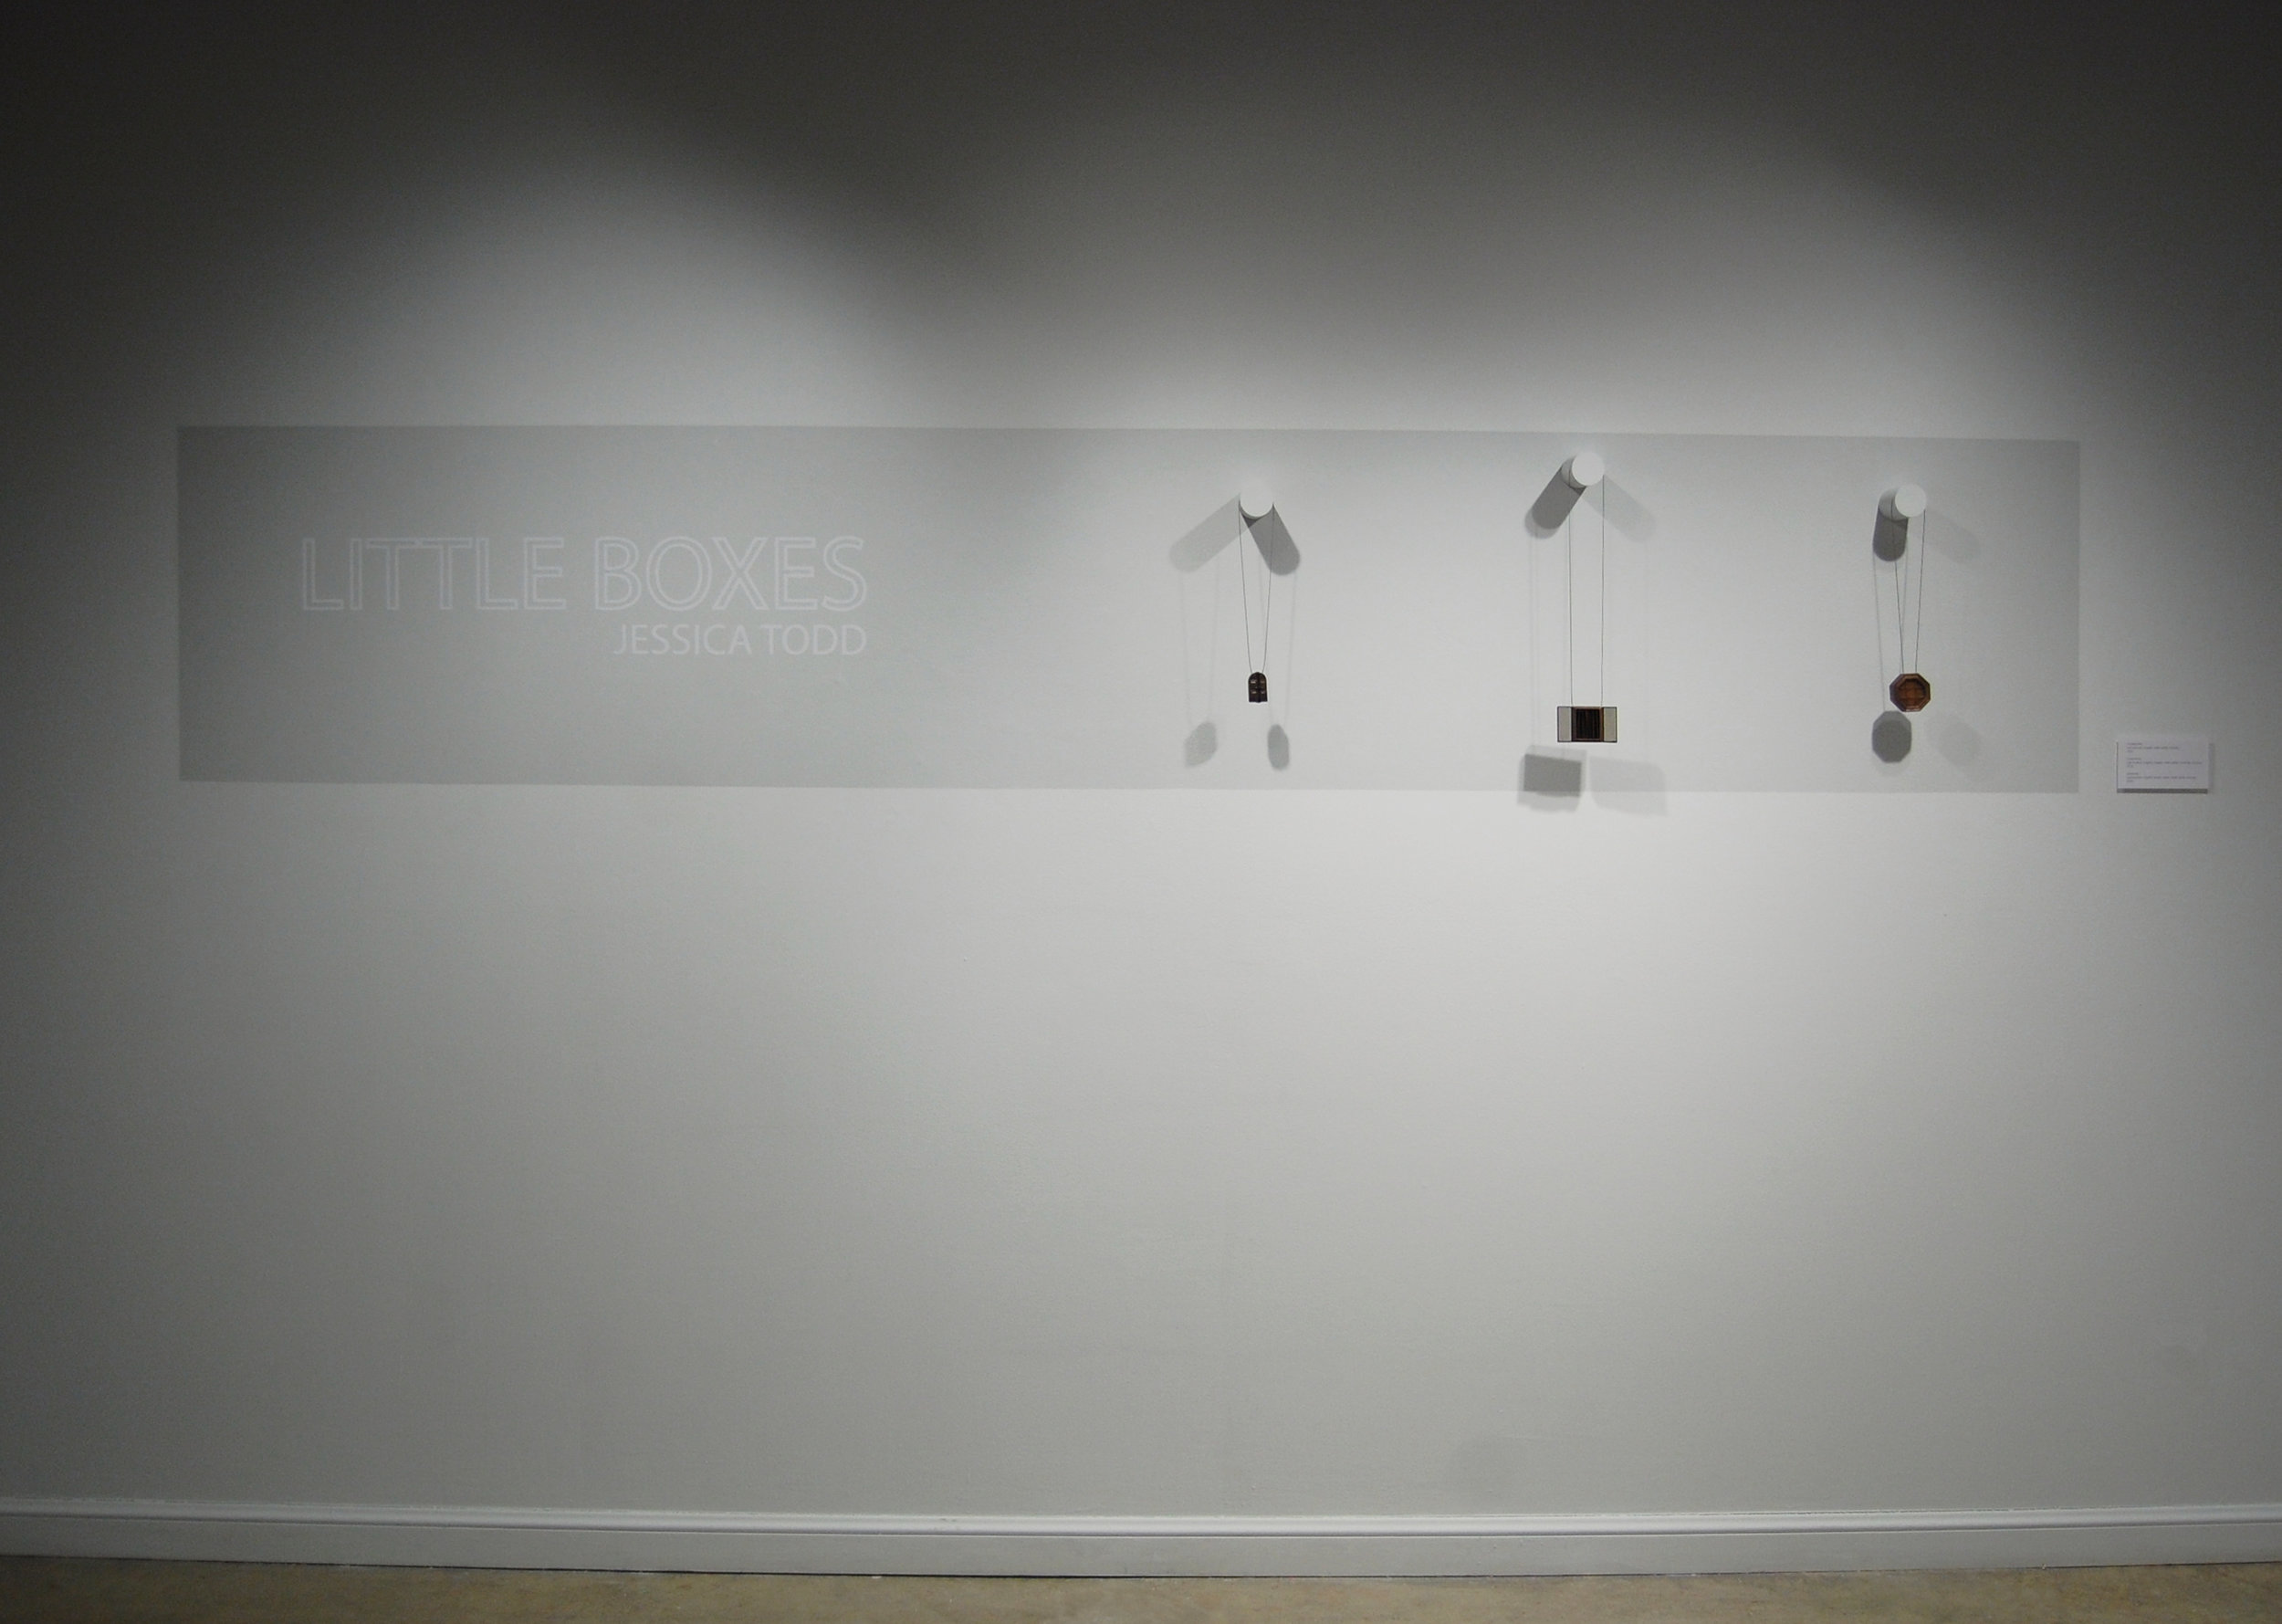 Figure 19:  Little Boxes  Installation View 4